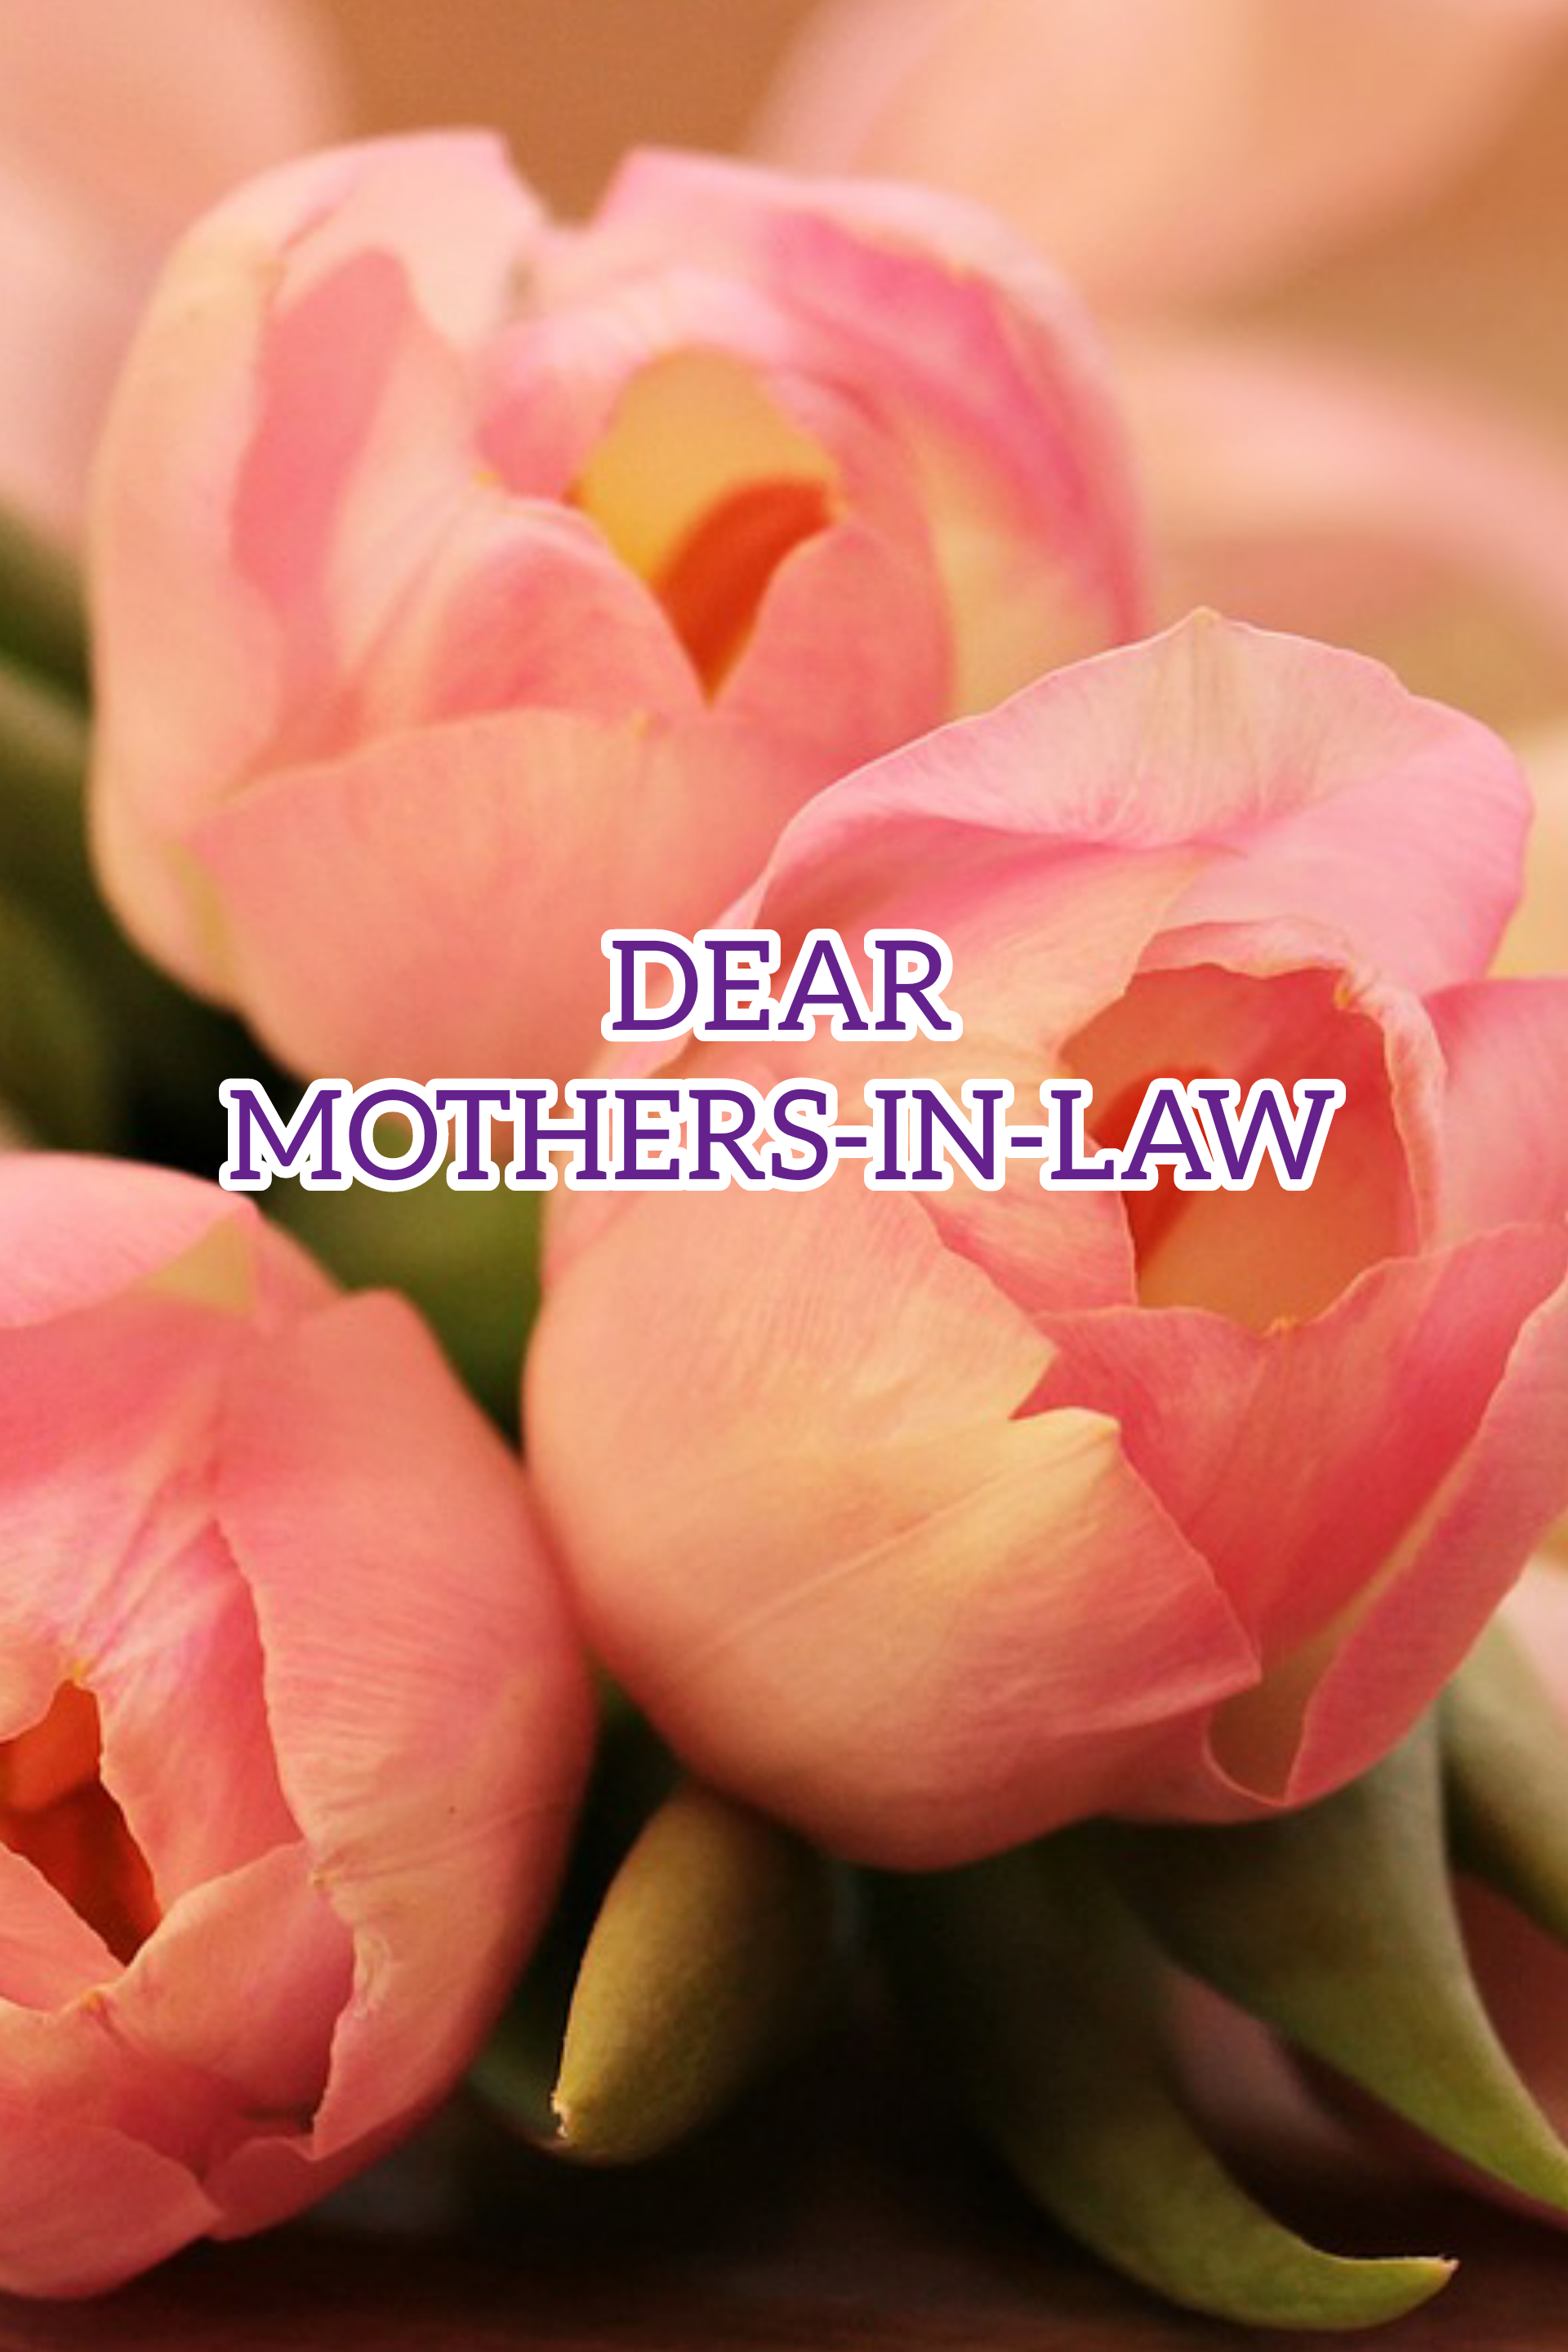 Dear Mothers-In-Law